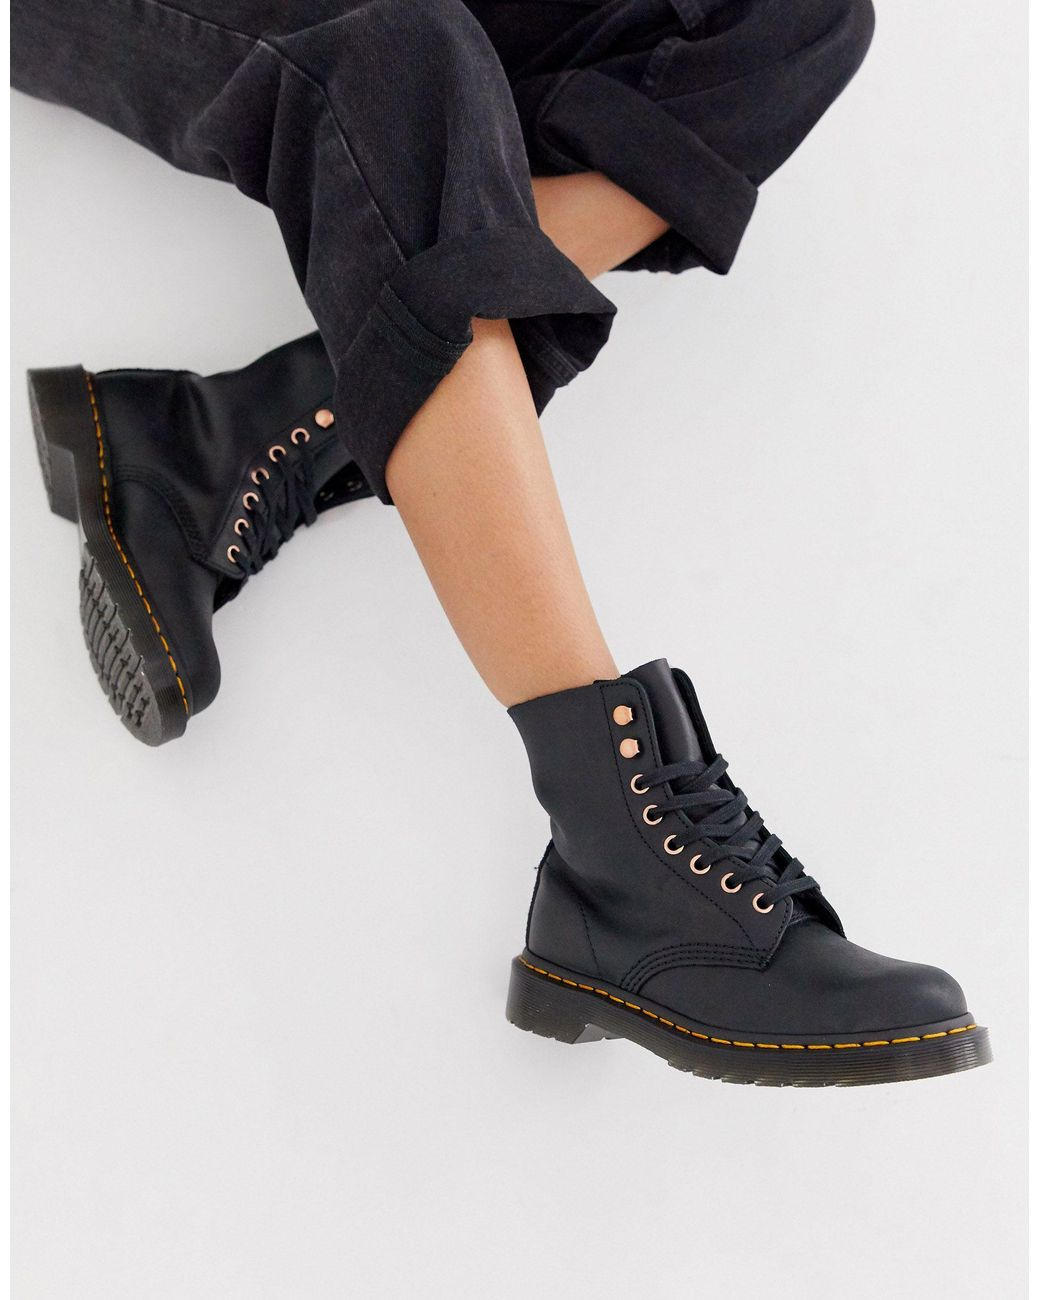 Dr. Martens 1460 Soapstone Leather